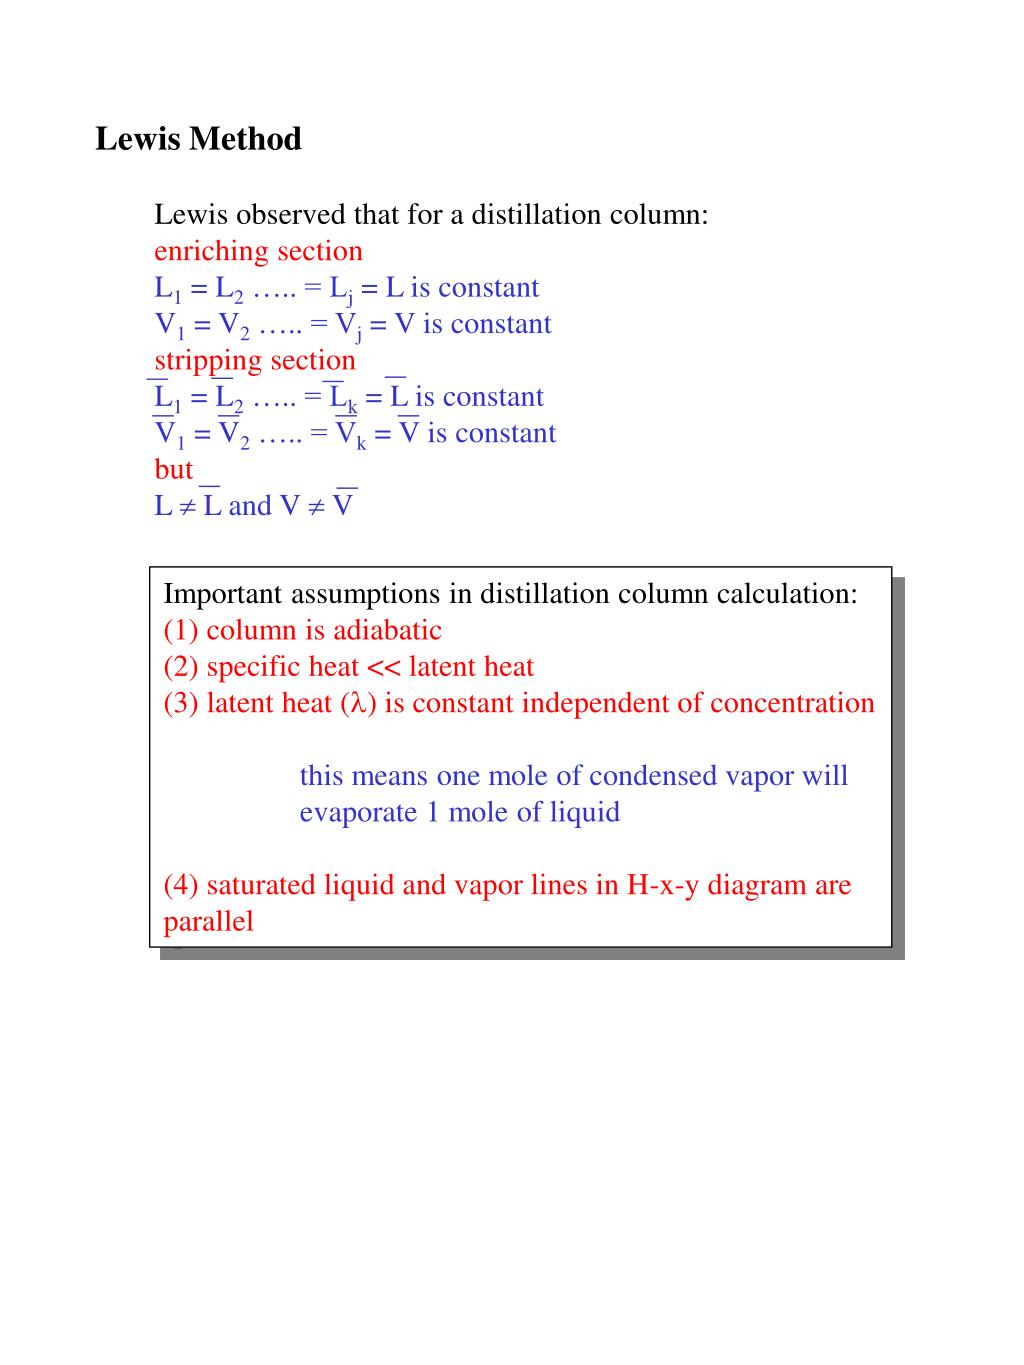 Lewis observed that for a distillation column: